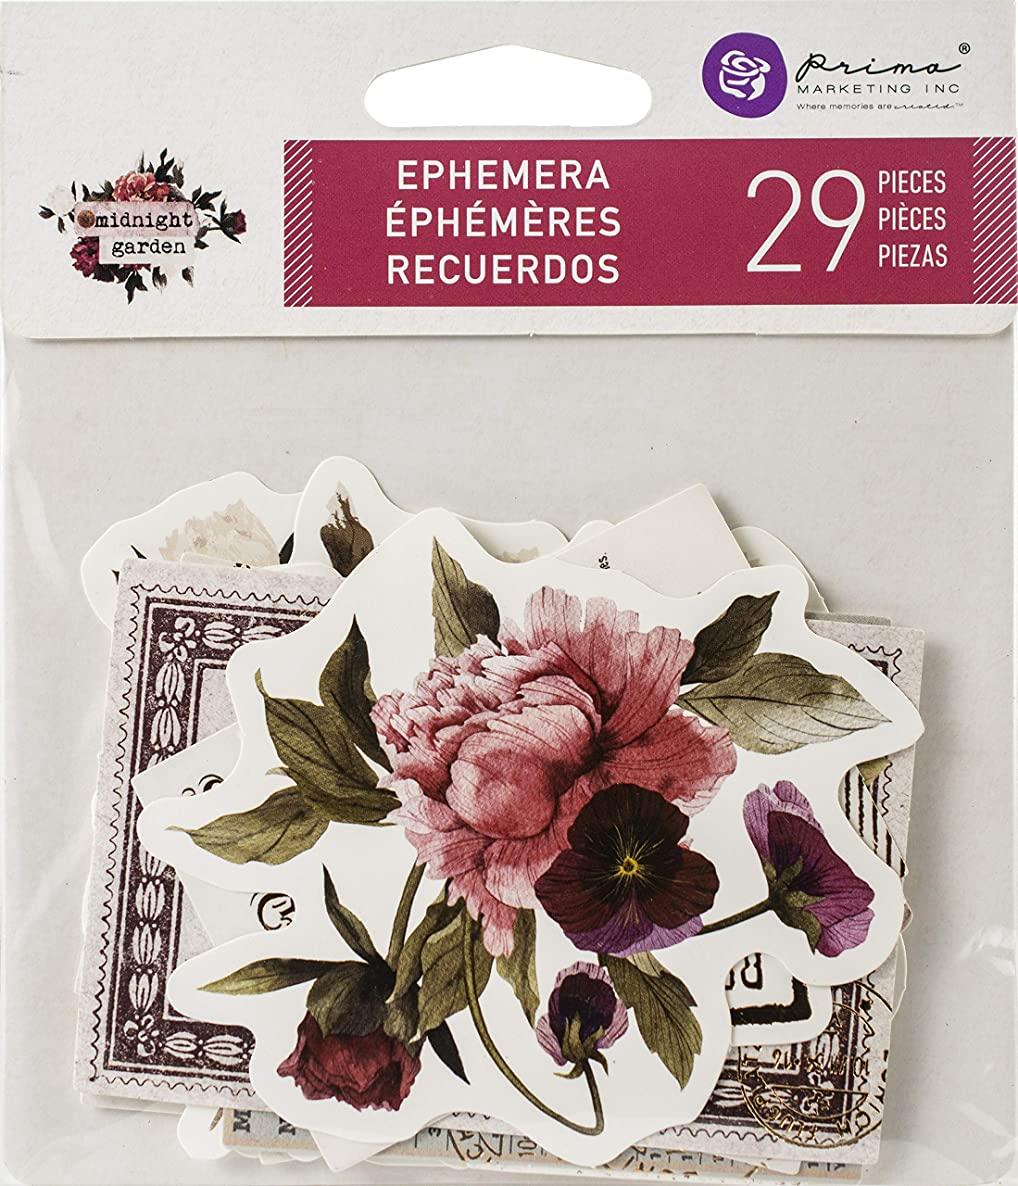 Prima Marketing 636043 Midnight Garden Ephemera Cardstock Die-Cuts 29/Pkg-Shapes, Tags, Words, Foiled Accents,